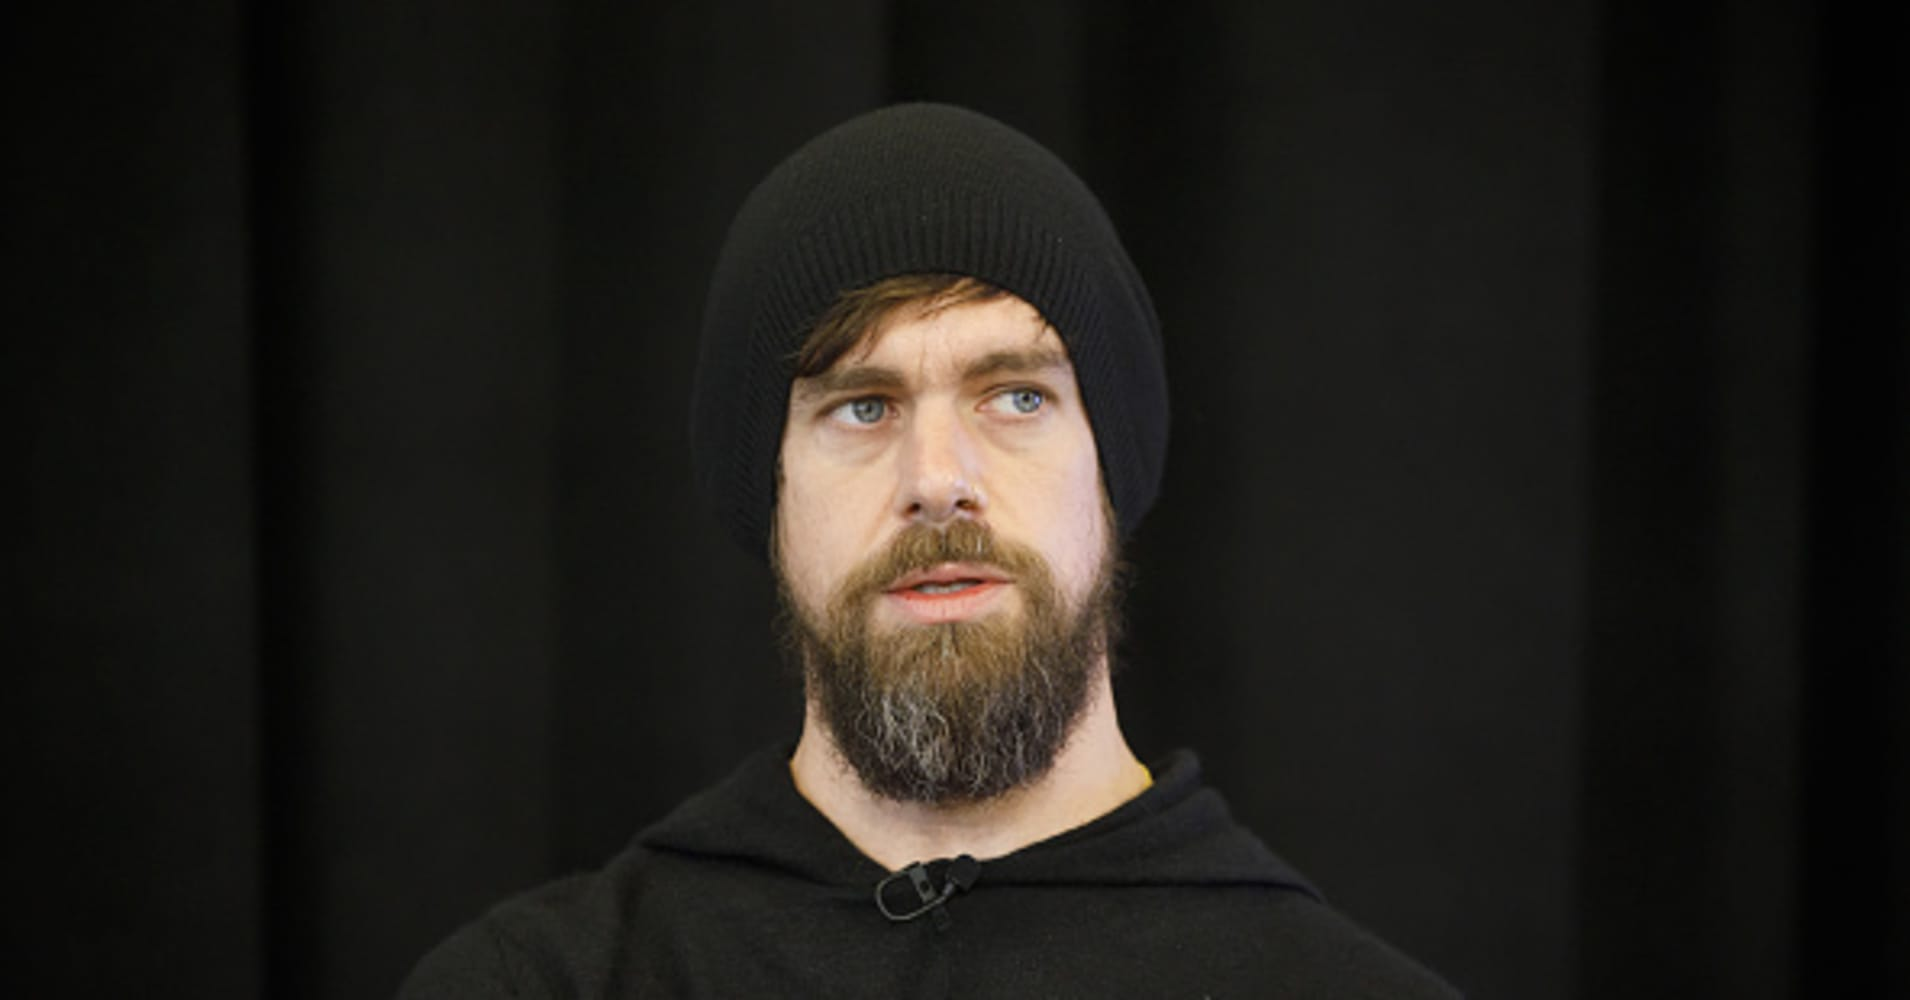 Jack Dorsey Reveals his Big Twitter Regret